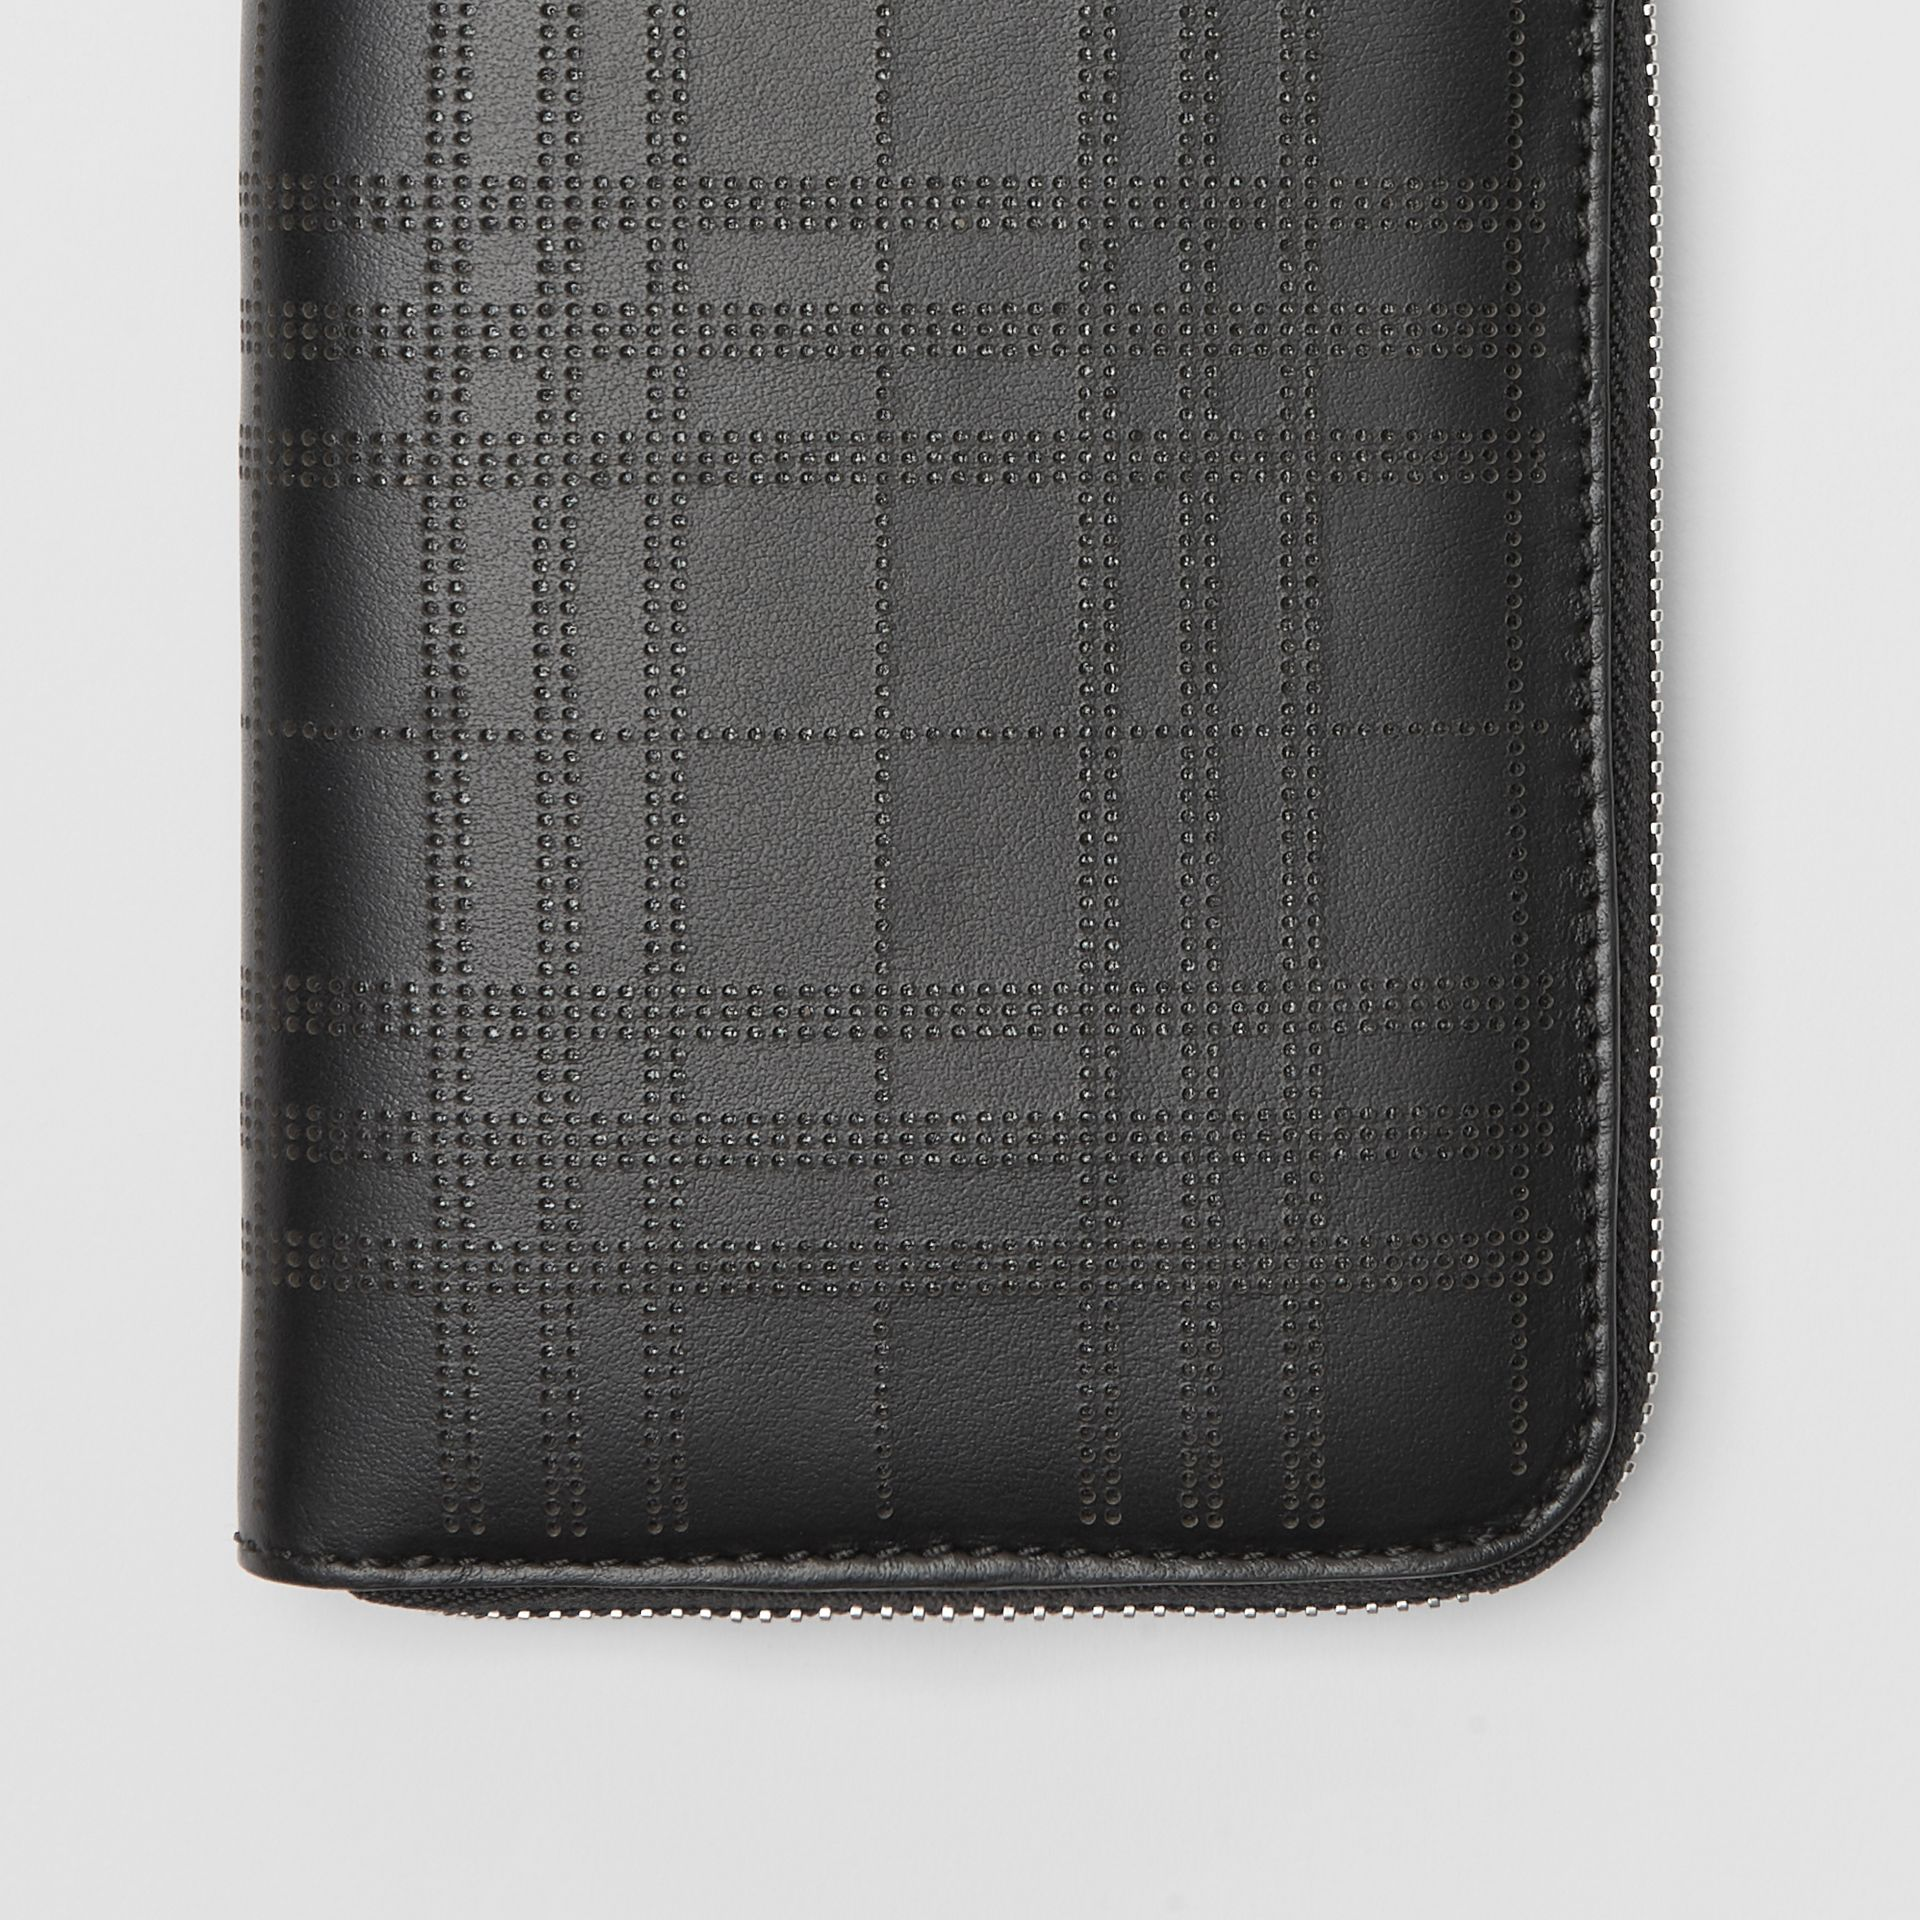 Perforated Check Leather Ziparound Wallet in Black - Men | Burberry United Kingdom - gallery image 1